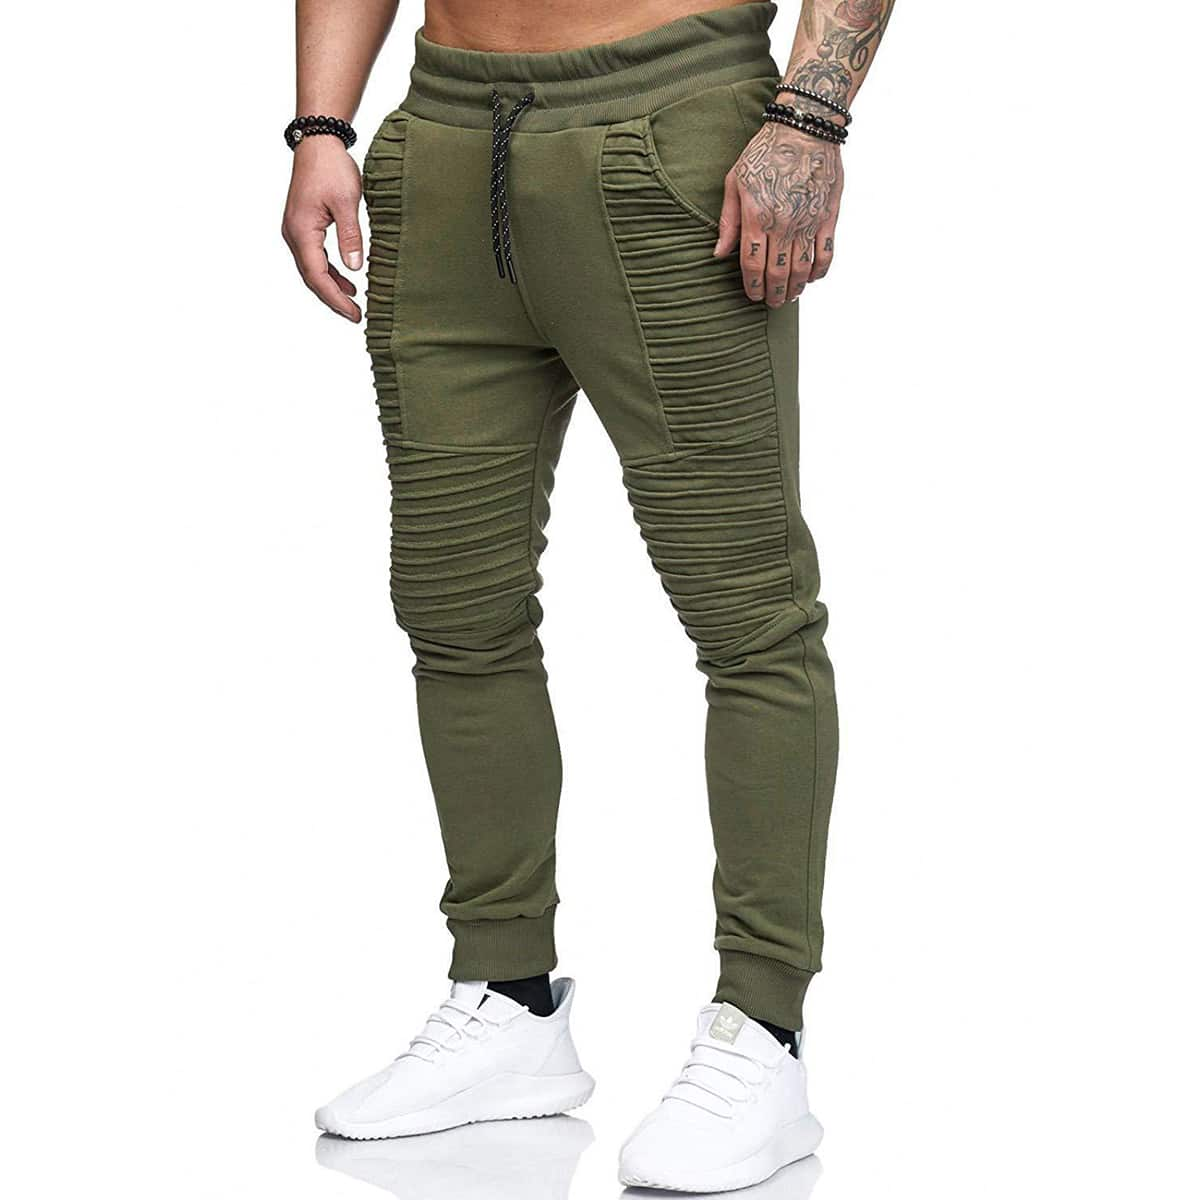 Men Solid Drawstring Waist Sweatpants